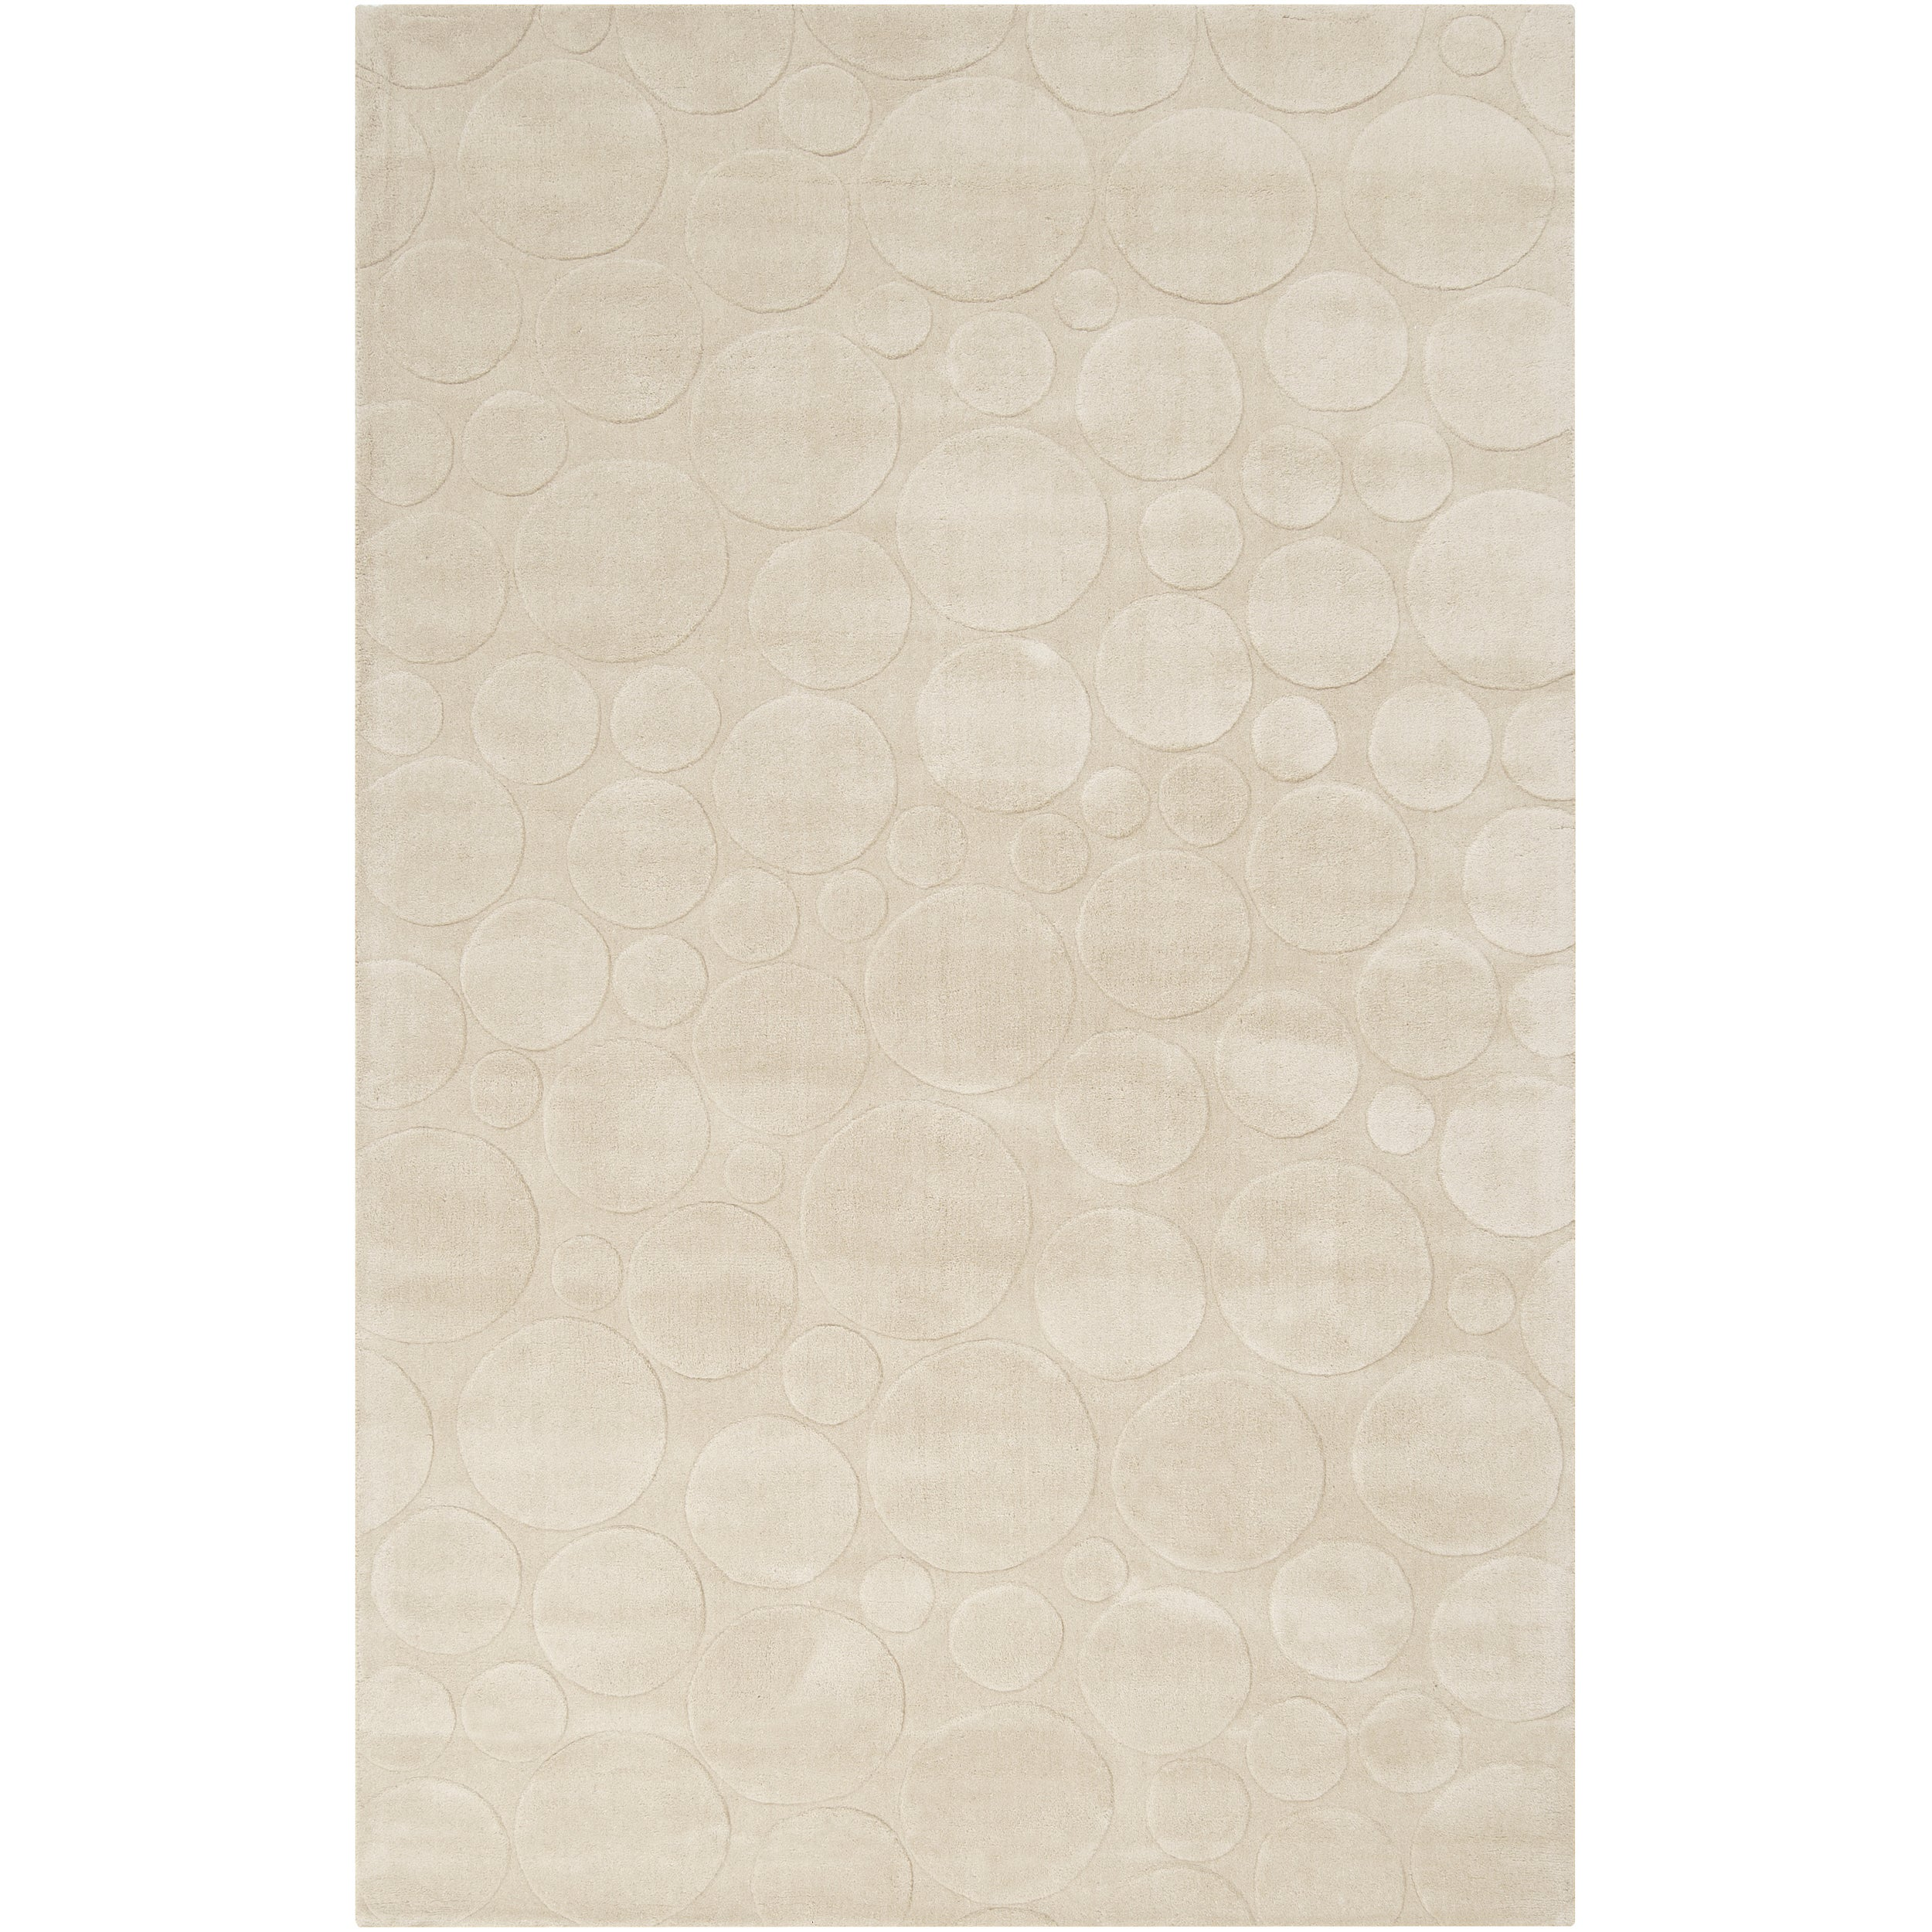 Candice Olson Loomed Ivory Scrumptious Geometric Circles Transitional Wool Rug (5' x 8')